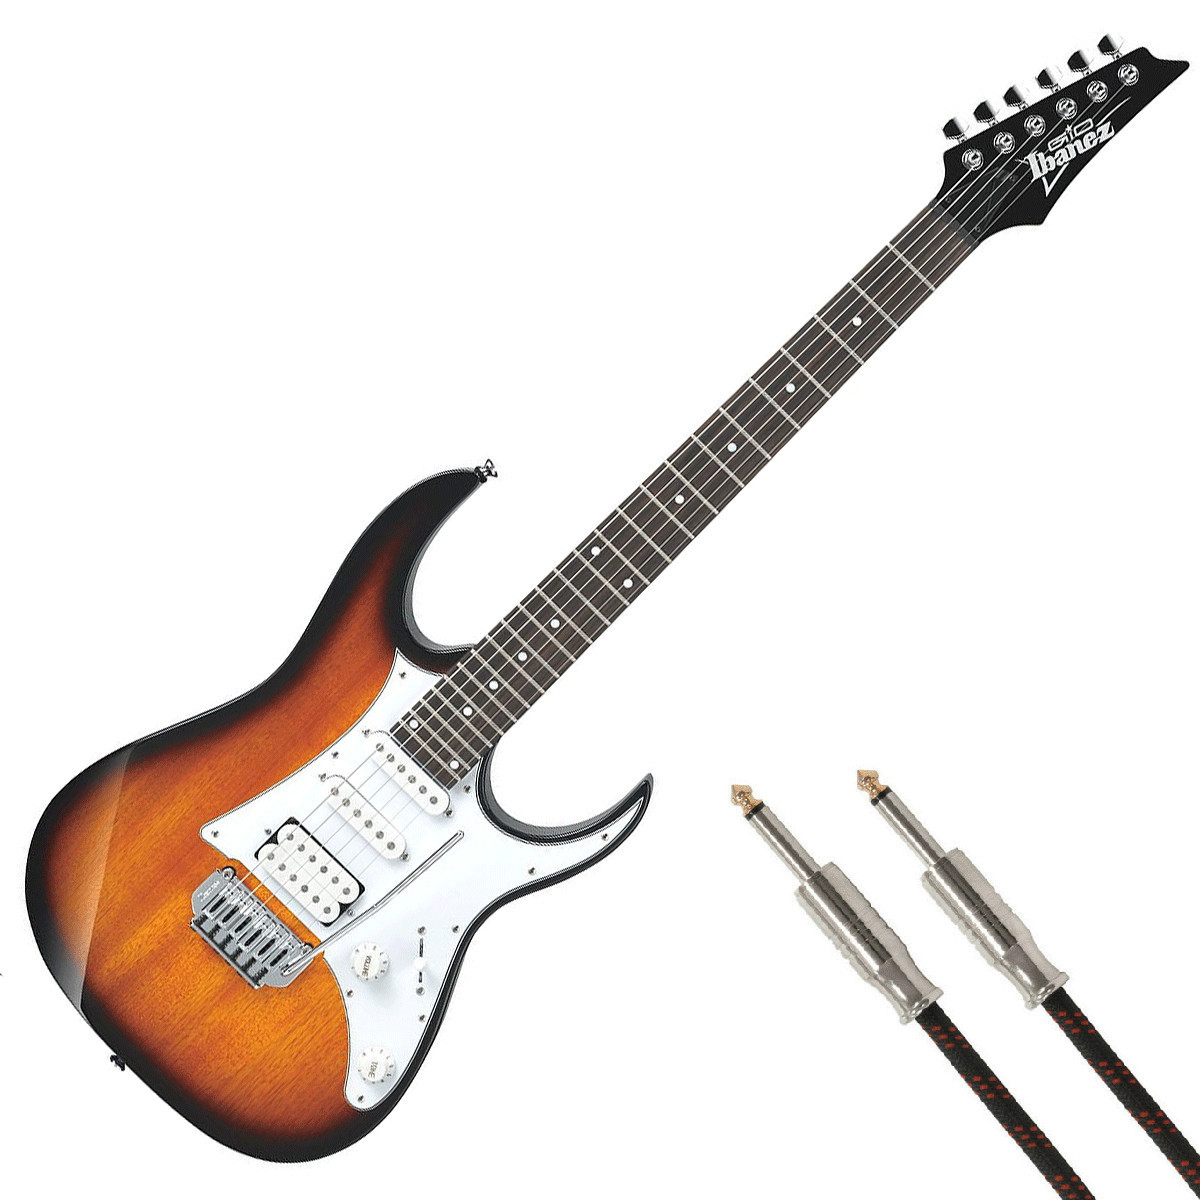 Fine Pit Bike Wiring Huge 2 Humbuckers In Series Shaped One Humbucker One Volume Wiring Remote Start Alarm Installation Young 3 Pickup Guitar DarkWiring 1 2 3 Ibanez GRG140 GIO, Sunburst   Free Guitar Cable At Gear4music